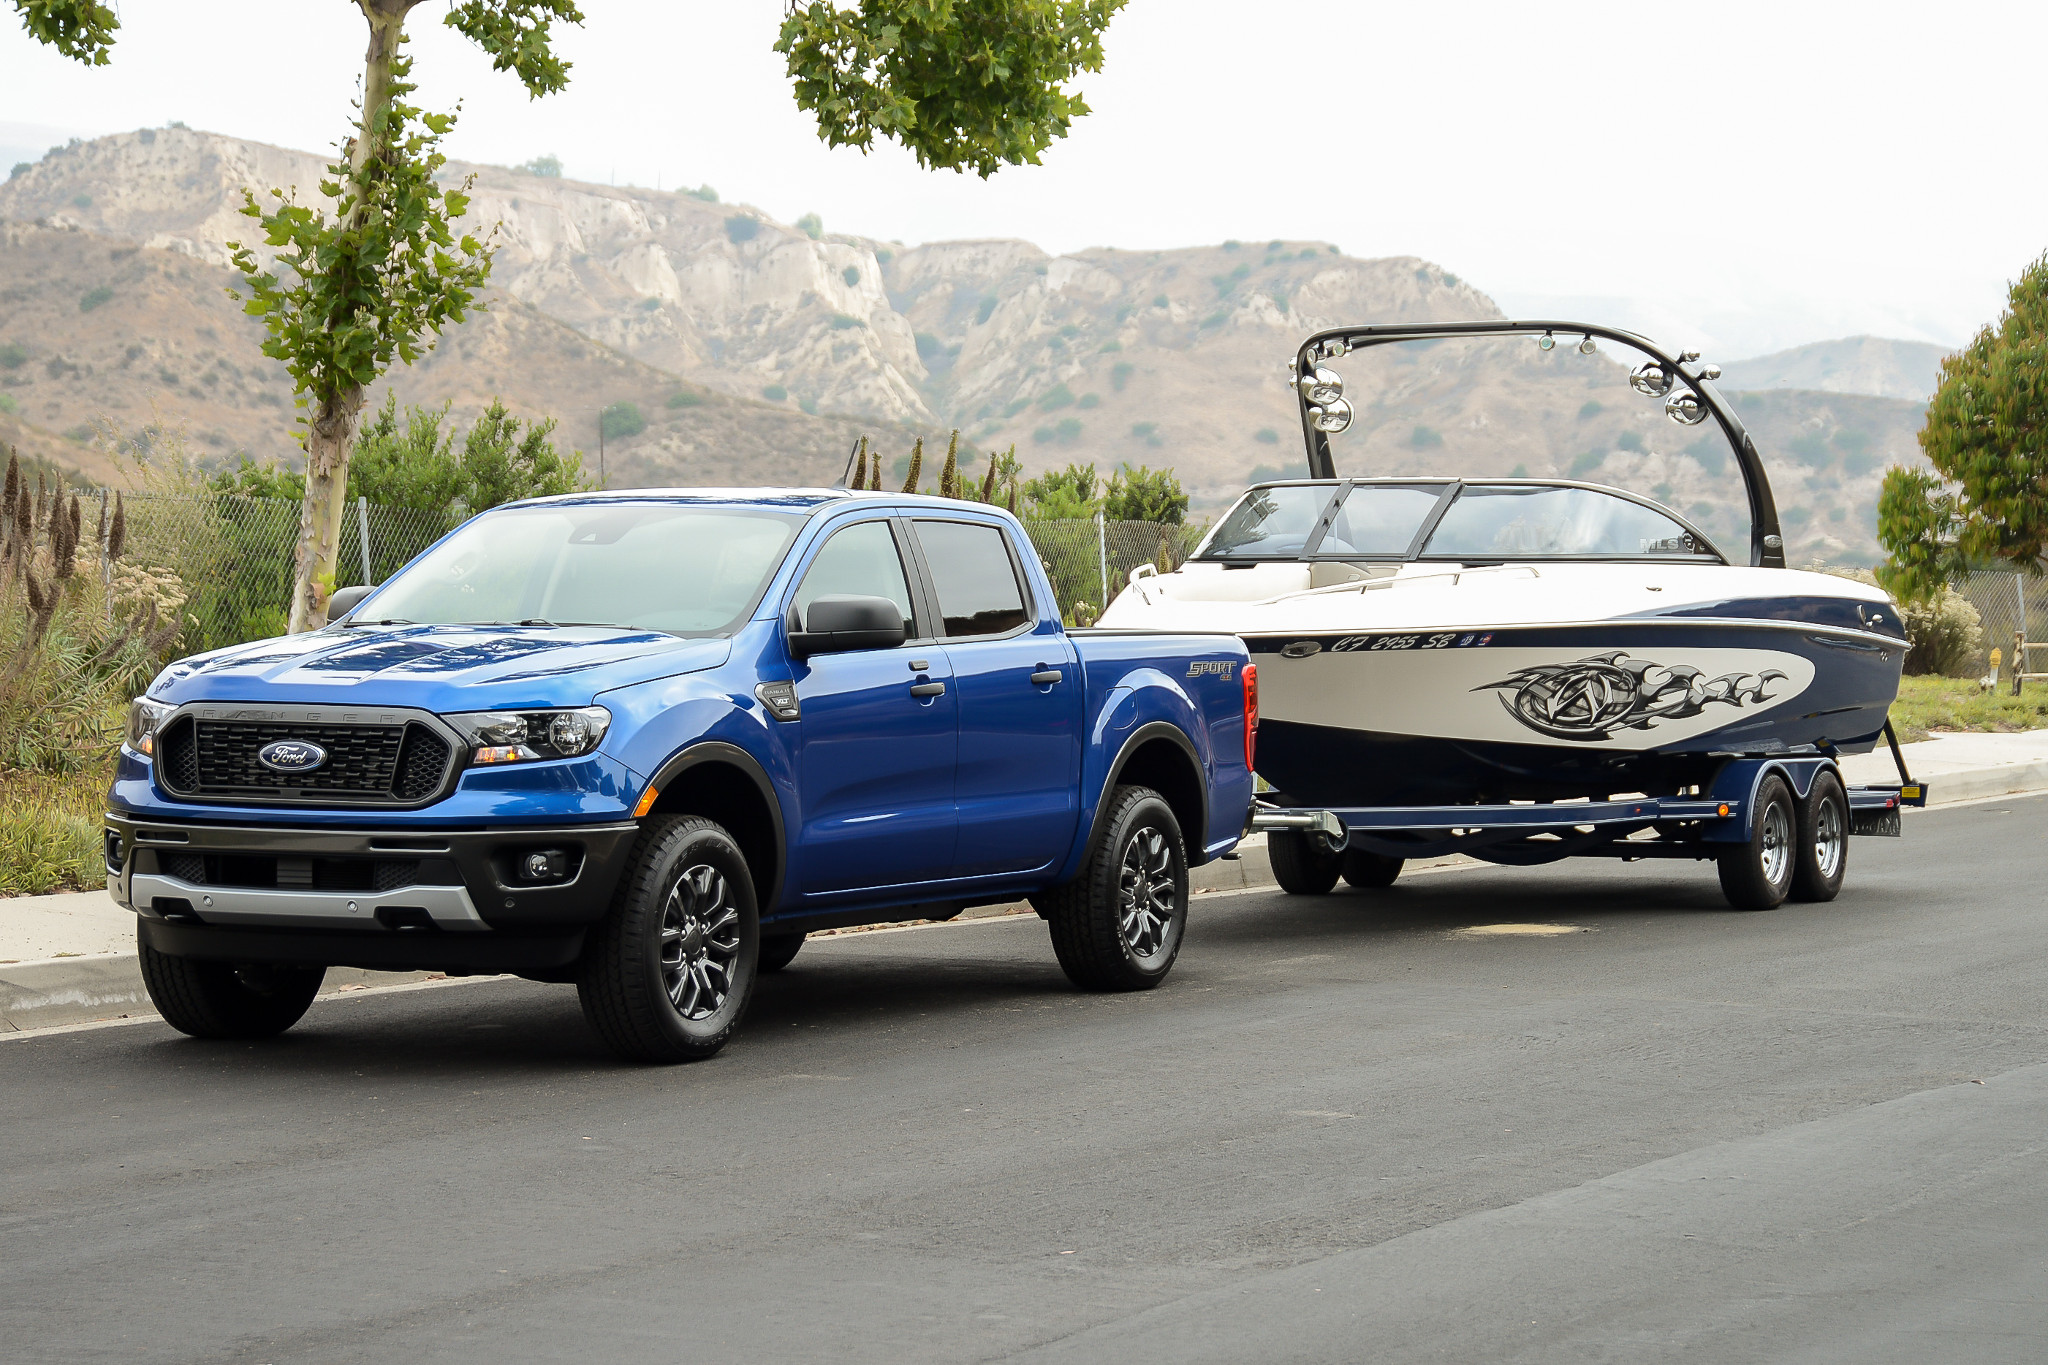 ford-ranger-2019-01-angle--blue--exterior--front--tow--towing.jpg